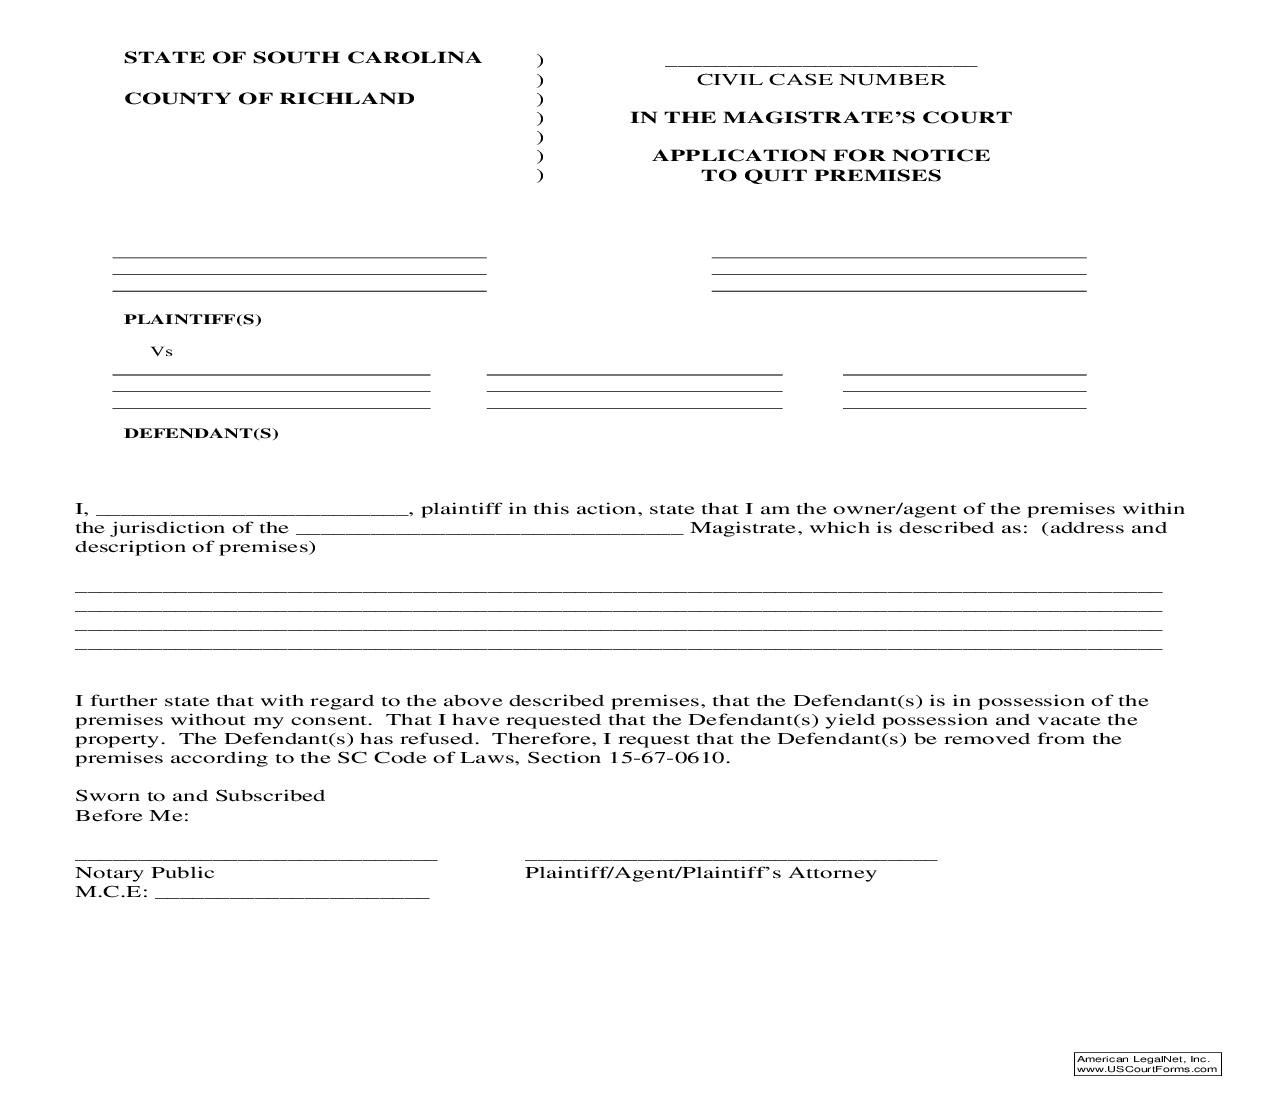 Application For Notice To Quit Premises | Pdf Fpdf Doc Docx | South Carolina